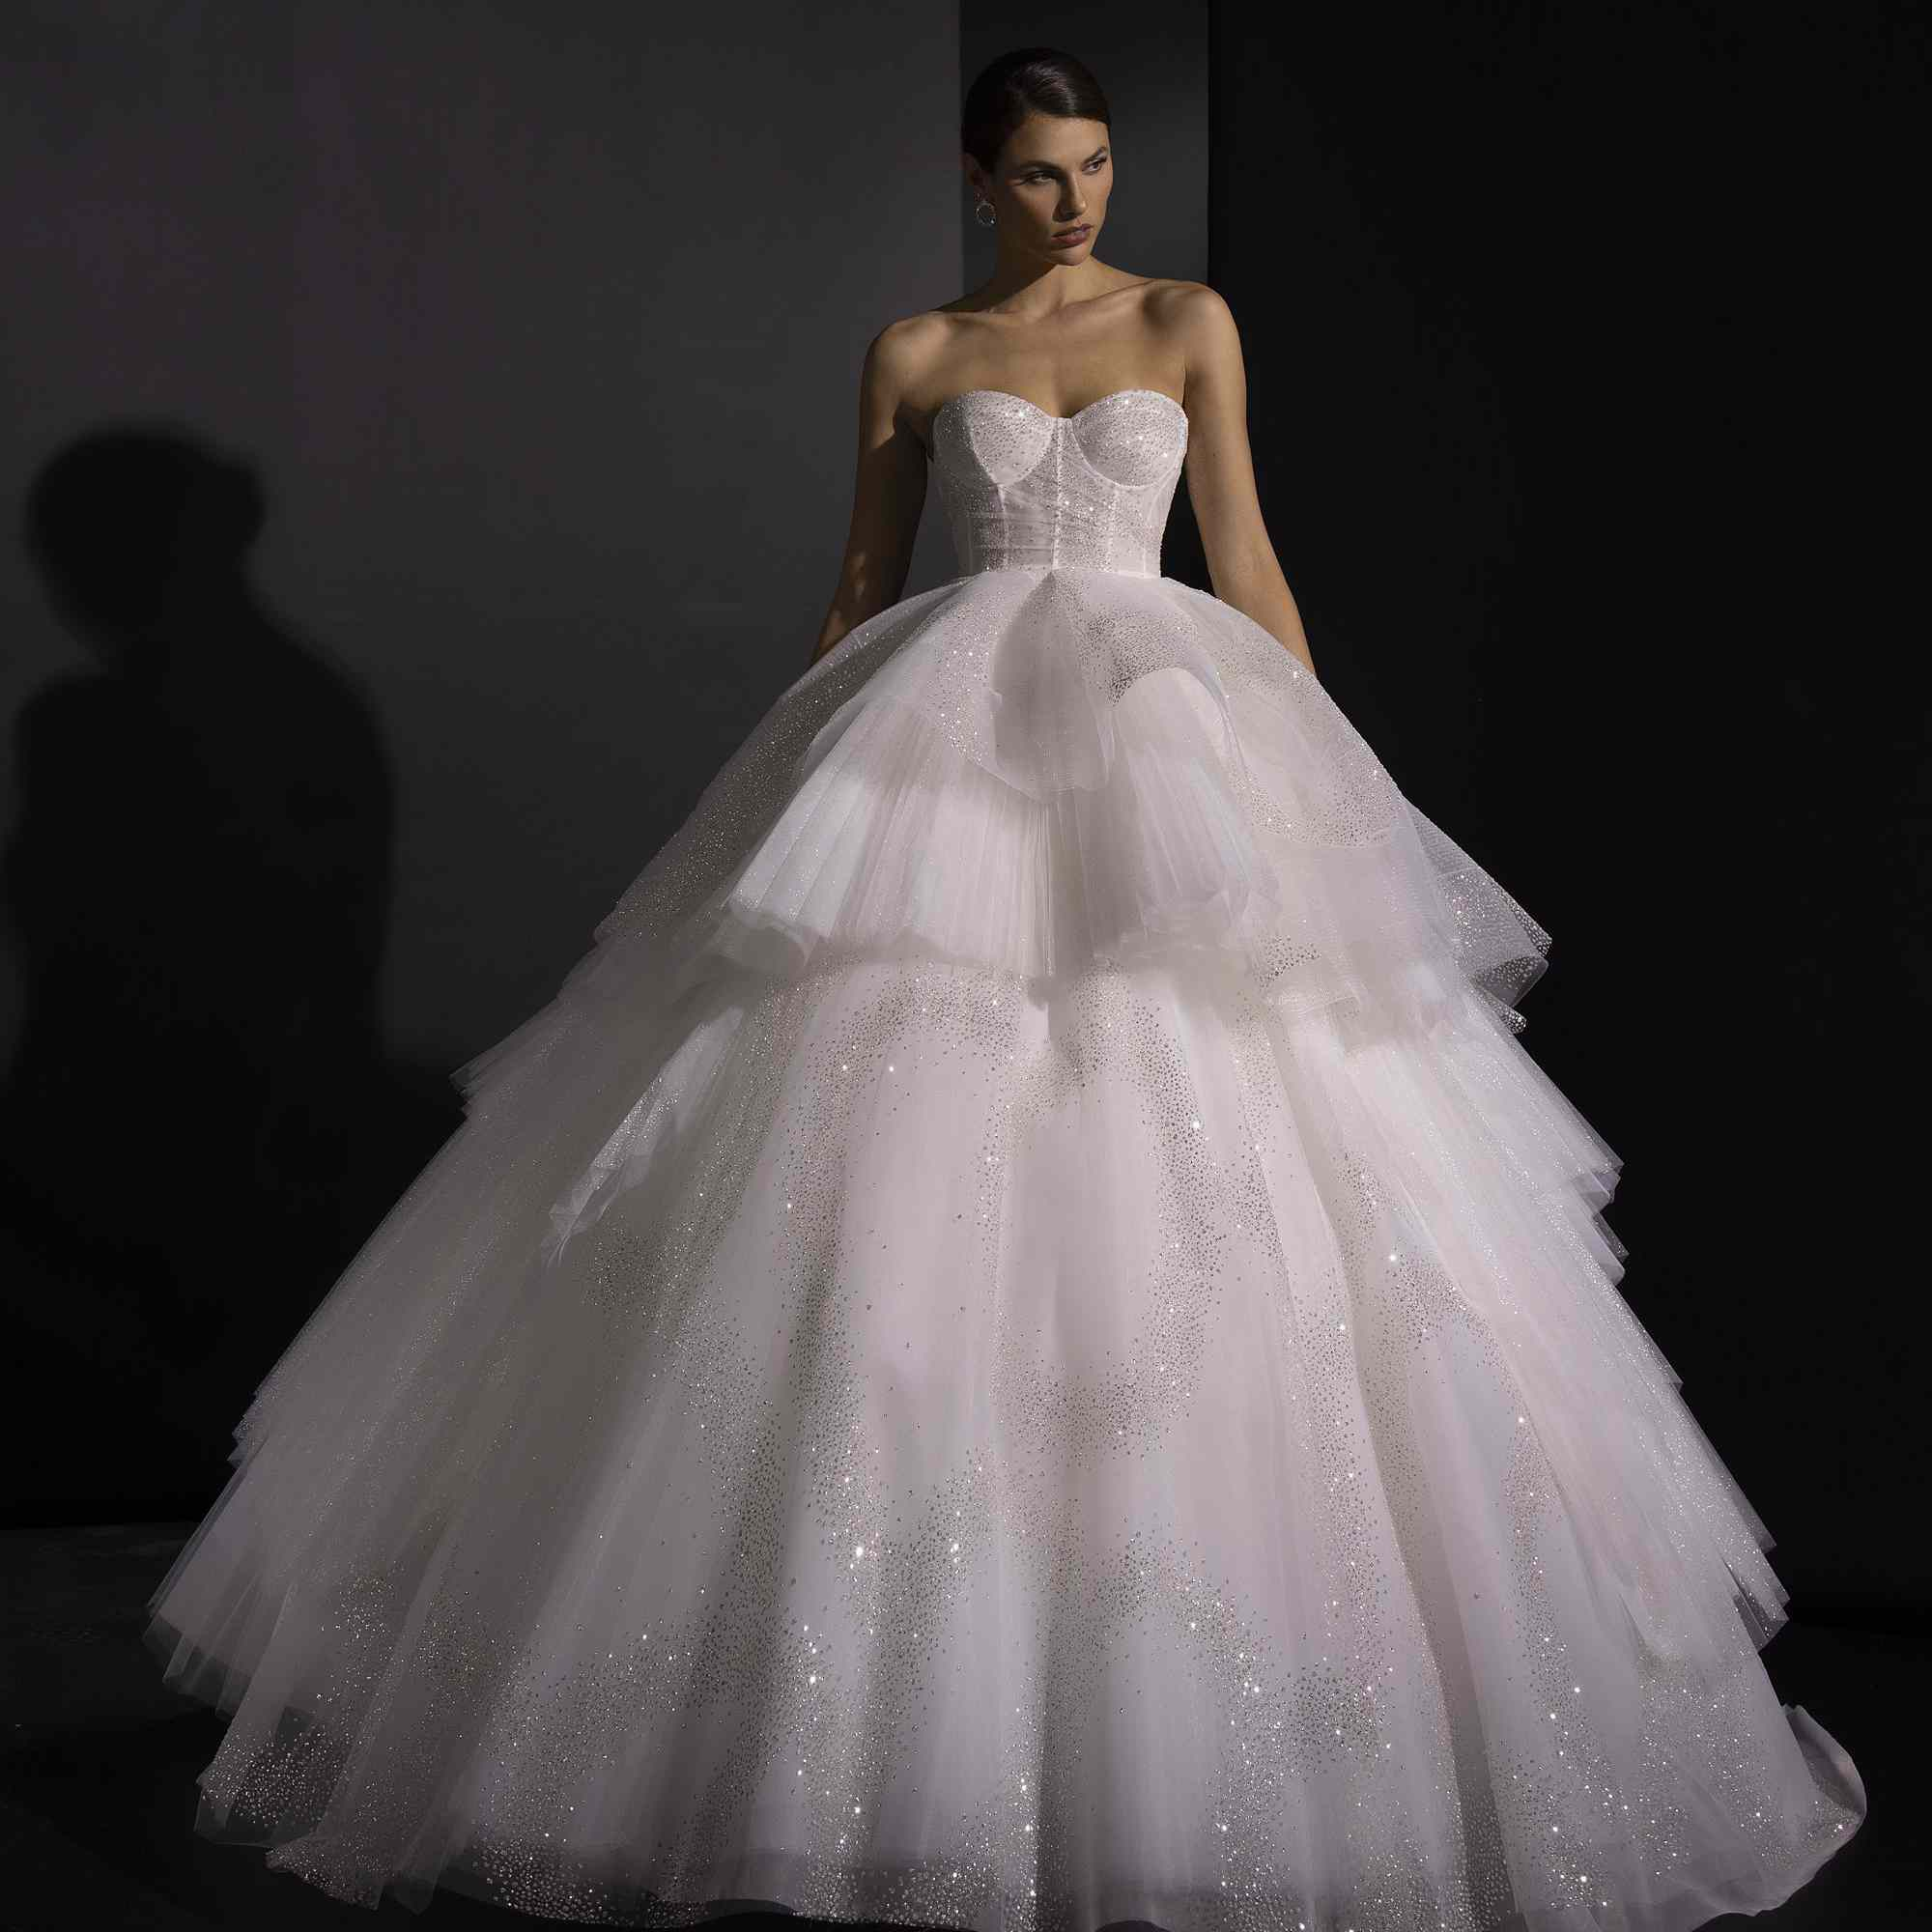 Model in strapless ballgown with voluminous tiered tulle skirt